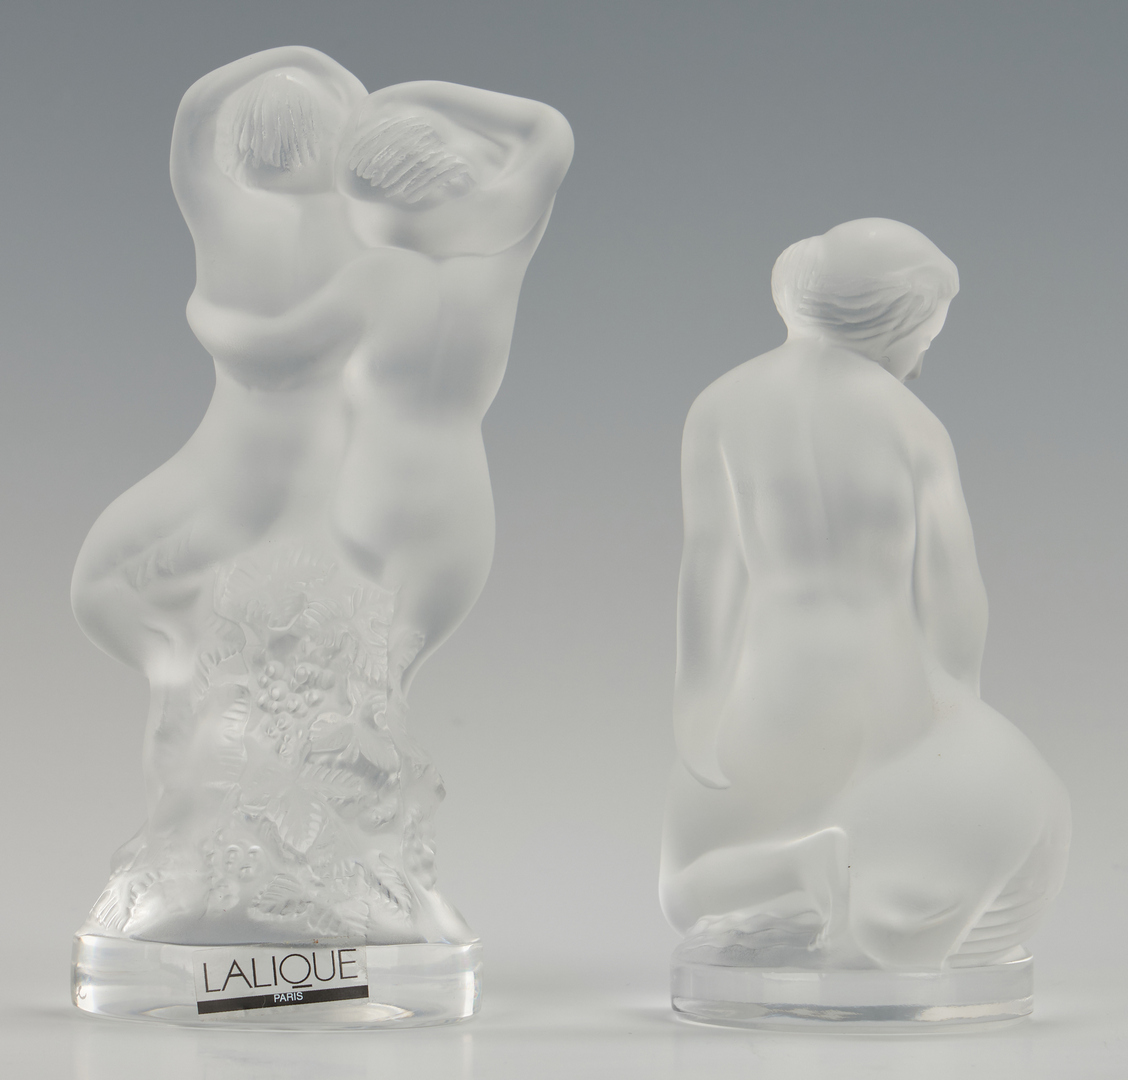 Lot 478: 4 Lalique Nude Female Figures